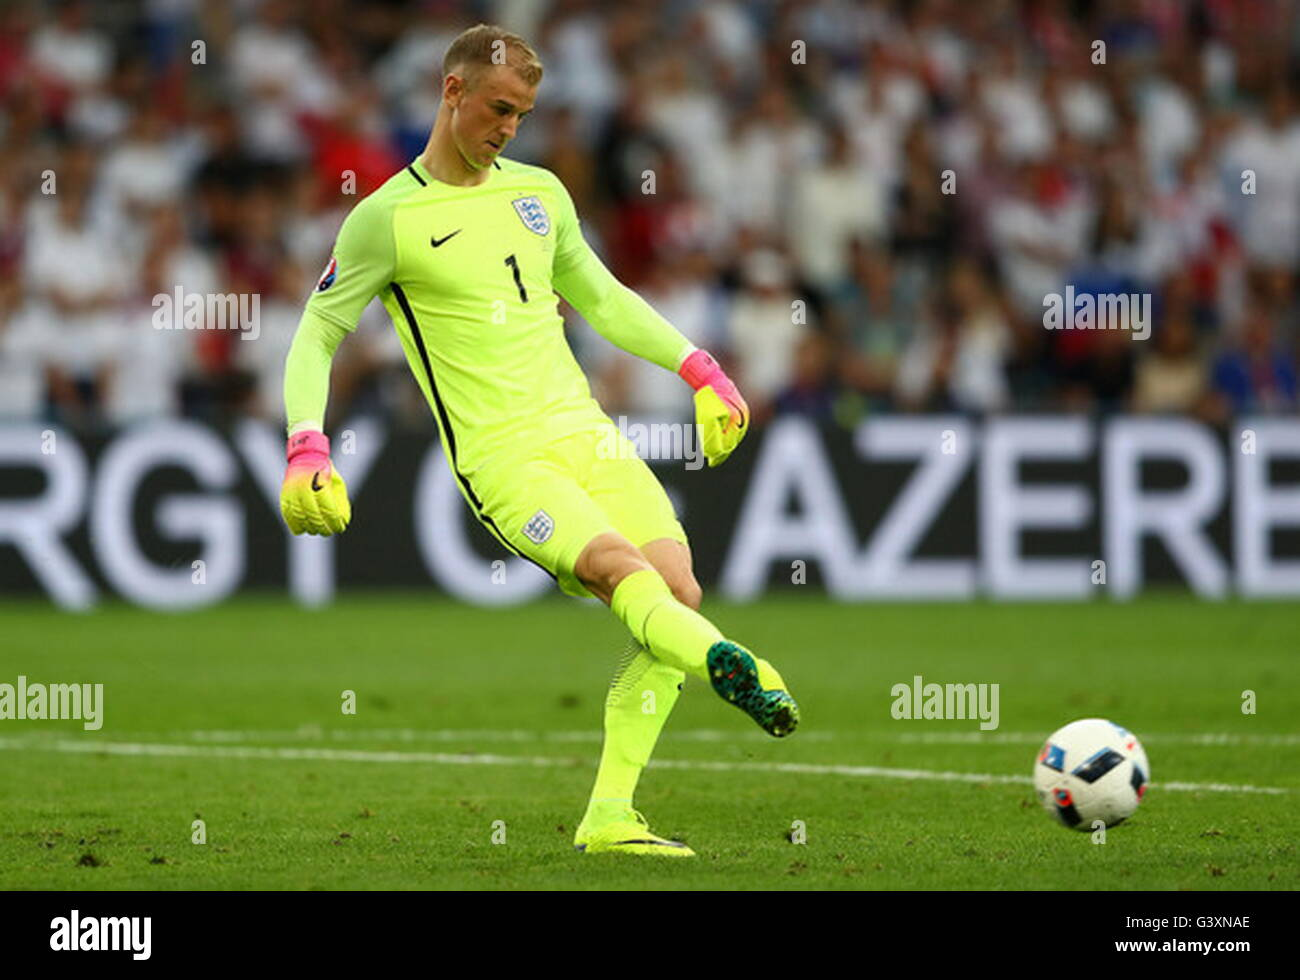 Marseille, France, June 11, 2016: Joe Hart  during the match of the Euro Group B, England - Russia stade velodrome - Stock Image